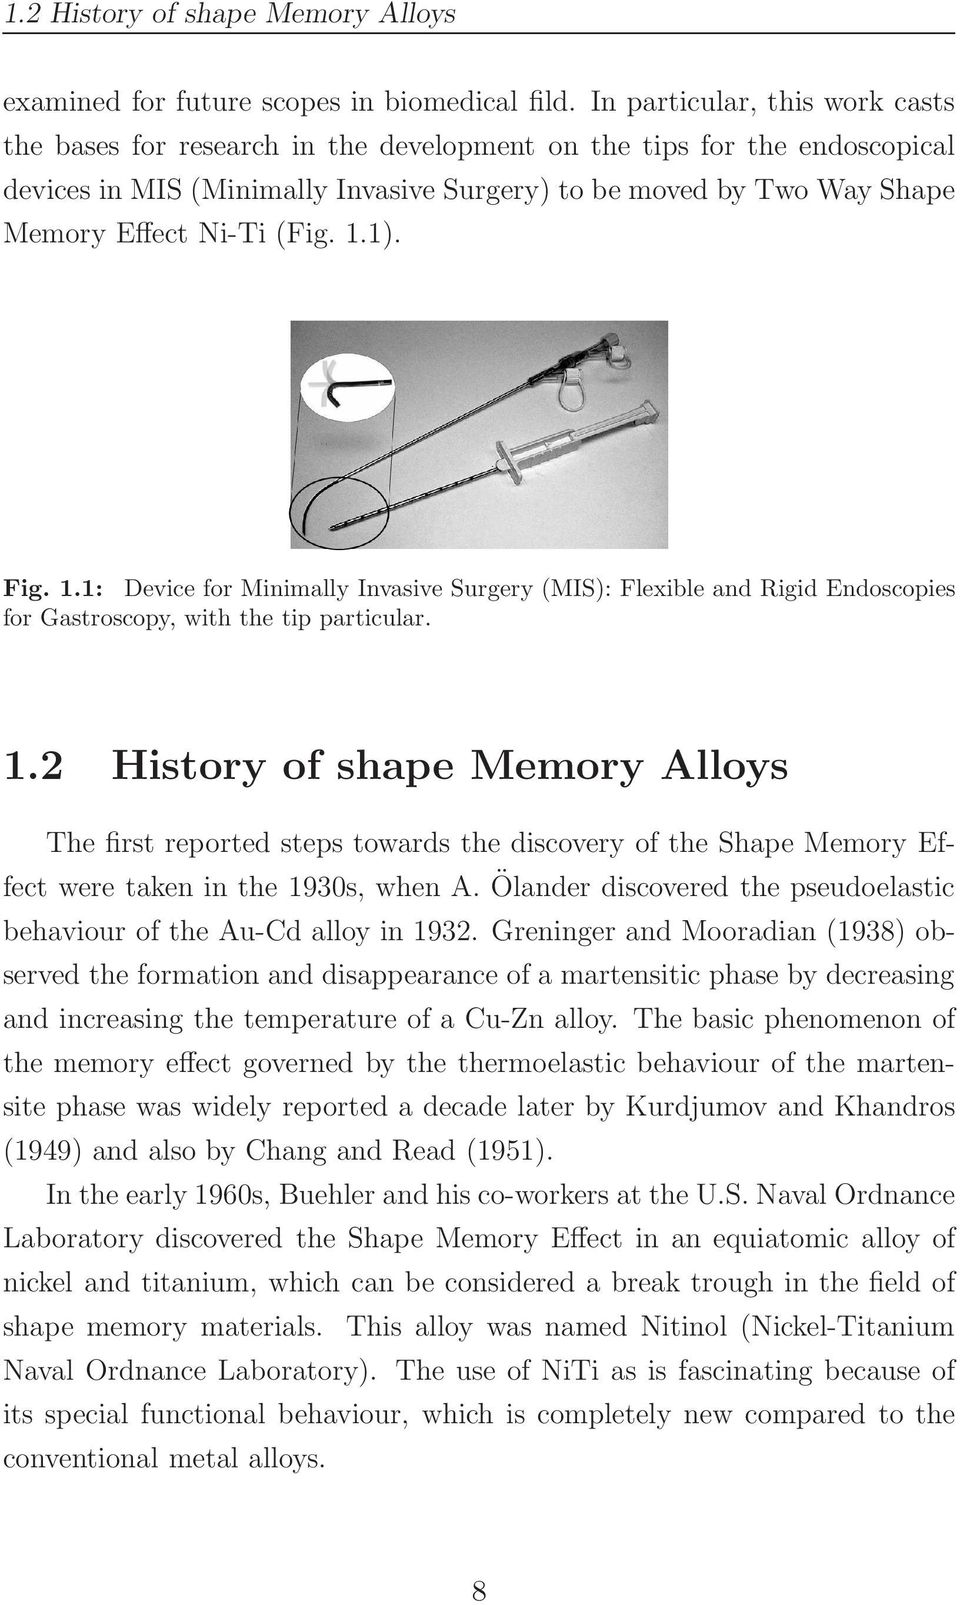 (Fig. 1.1). Fig. 1.1: Device for Minimally Invasive Surgery (MIS): Flexible and Rigid Endoscopies for Gastroscopy, with the tip particular. 1.2 History of shape Memory Alloys The first reported steps towards the discovery of the Shape Memory Effect were taken in the 1930s, when A.